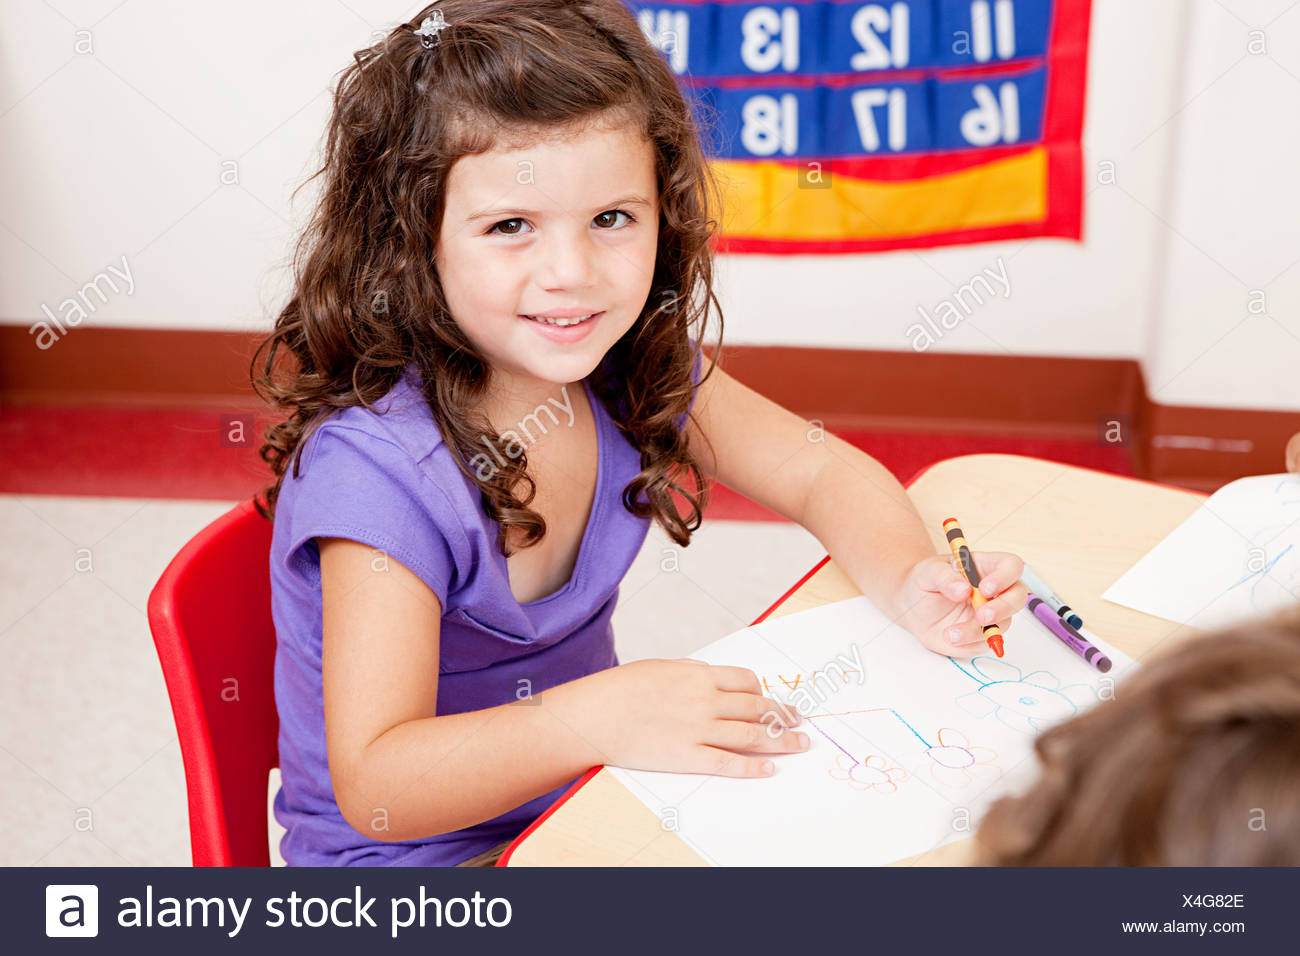 Girl drawing a picture in class - Stock Image